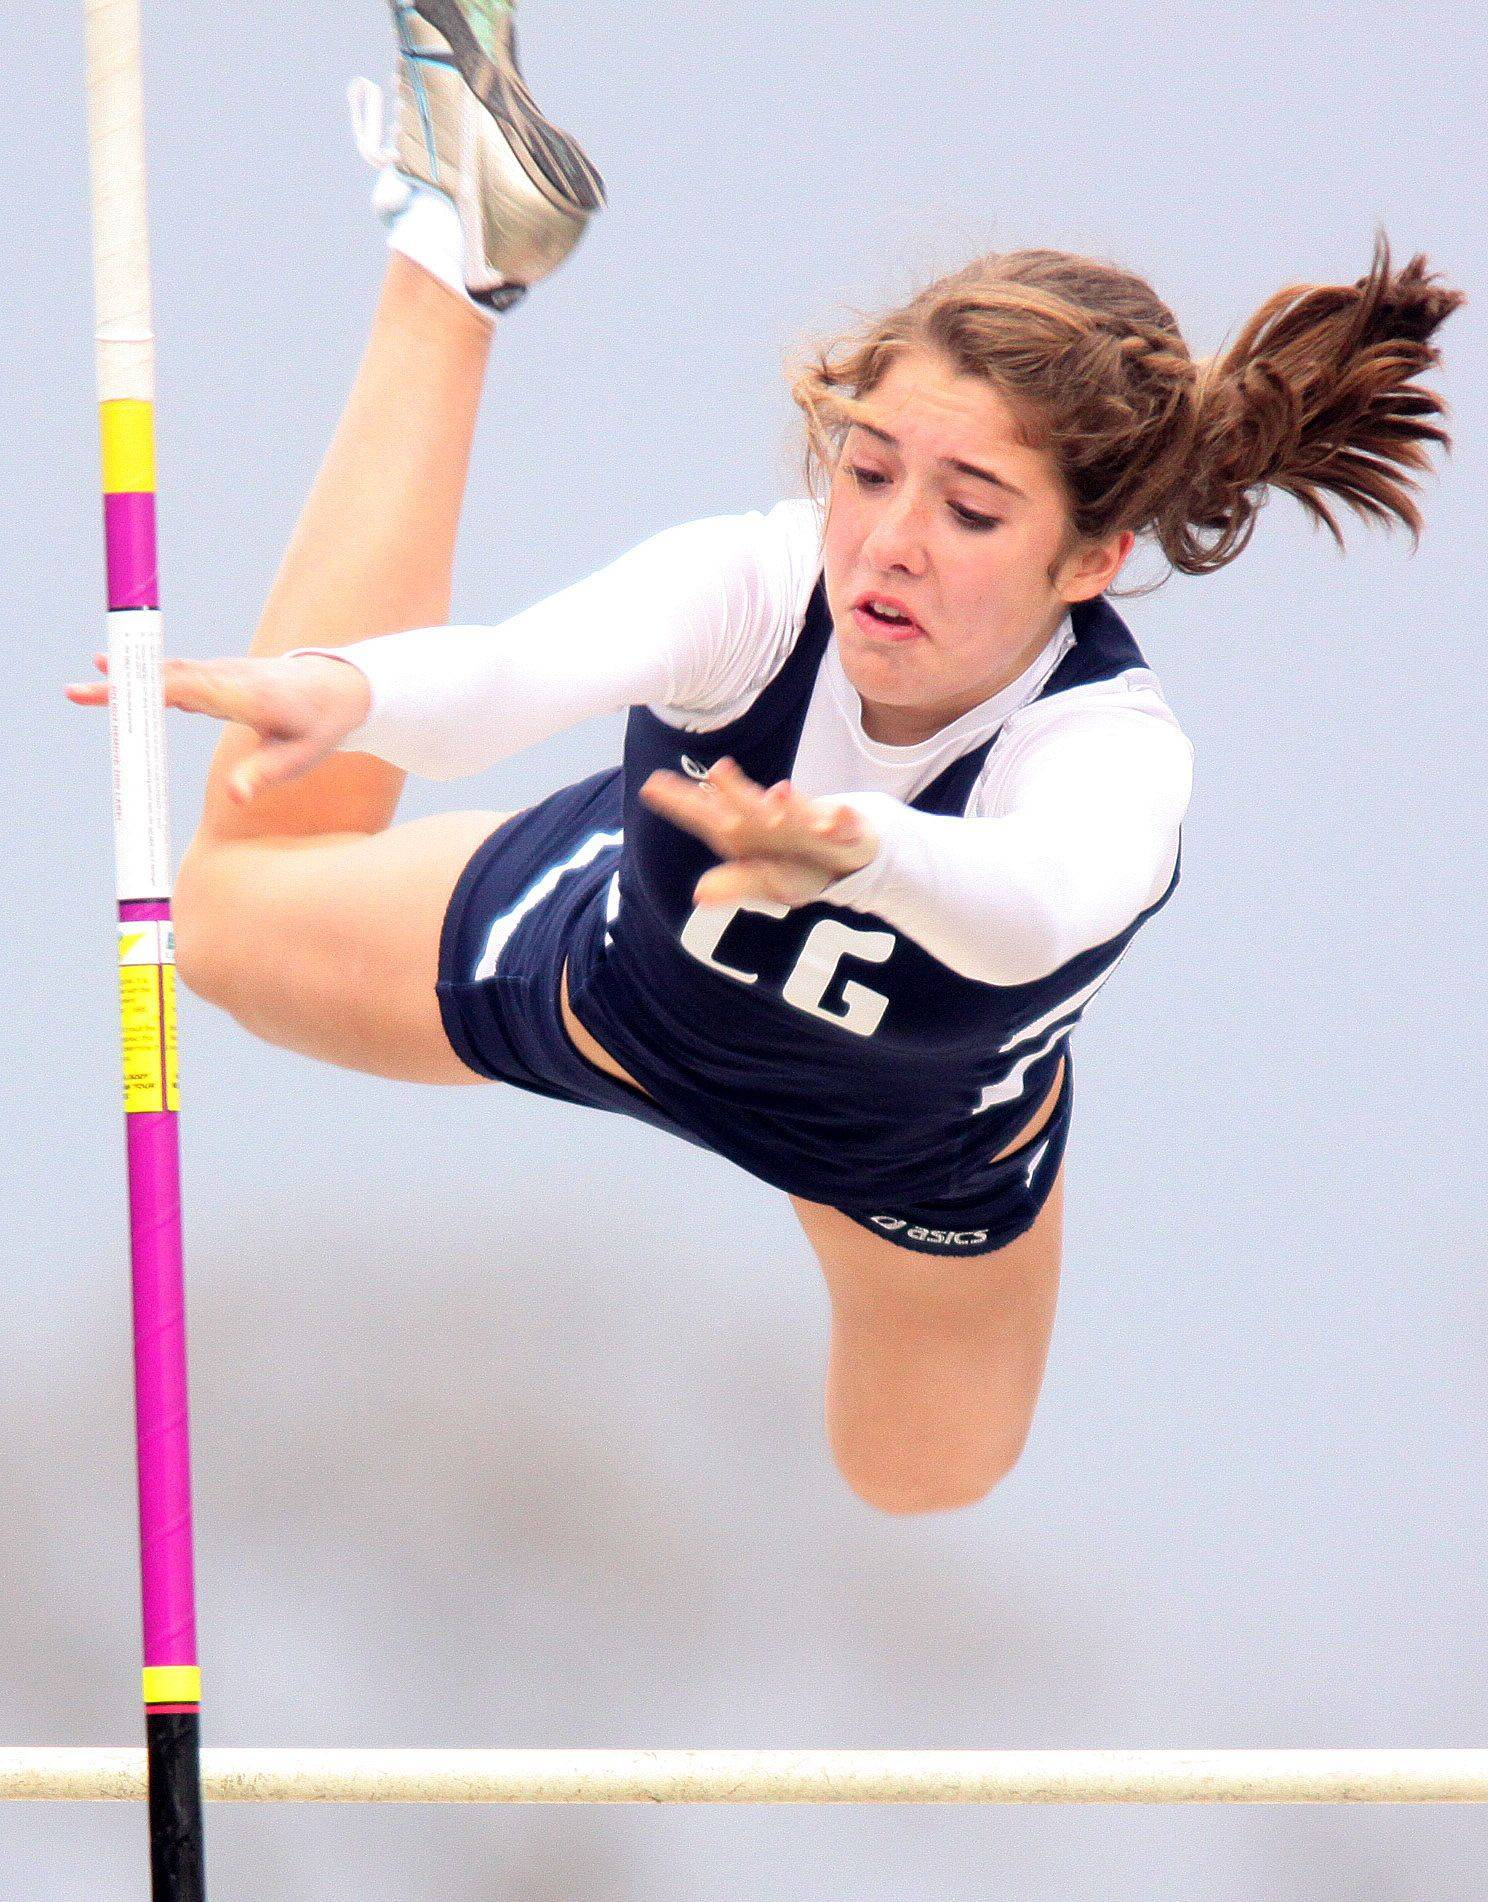 Cary-Grove's Emily Scott clears 6 feet, 6 inches in the pole vault during the McHenry County Track and Field Meet at Metcalf Field on the campus of Crystal Lake Central on Wednesday evening.